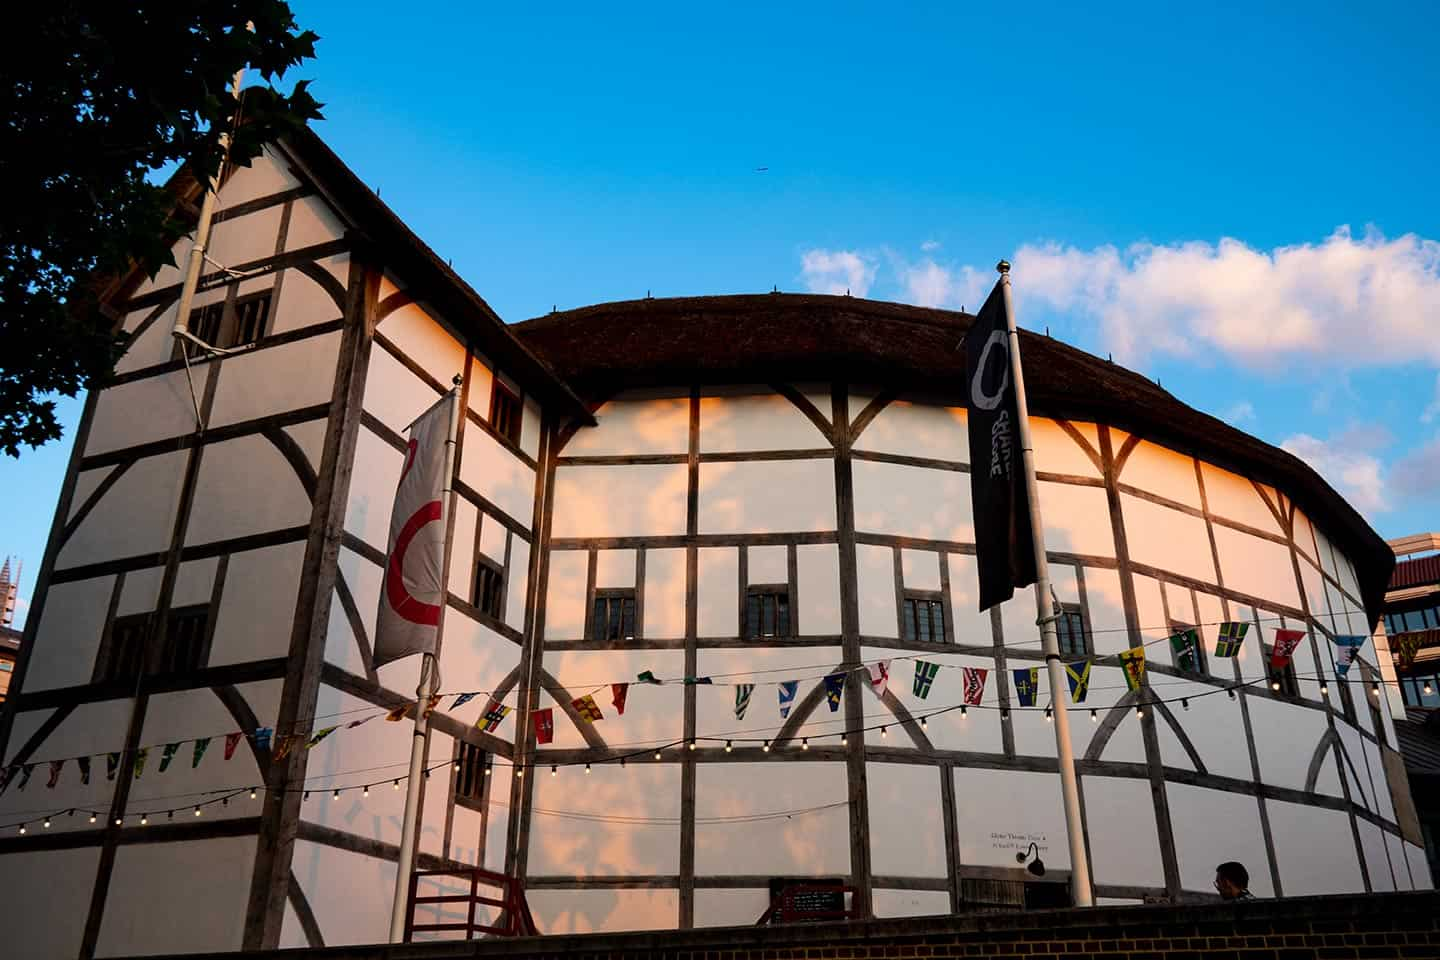 Image of the Globe Theatre in London at sunset